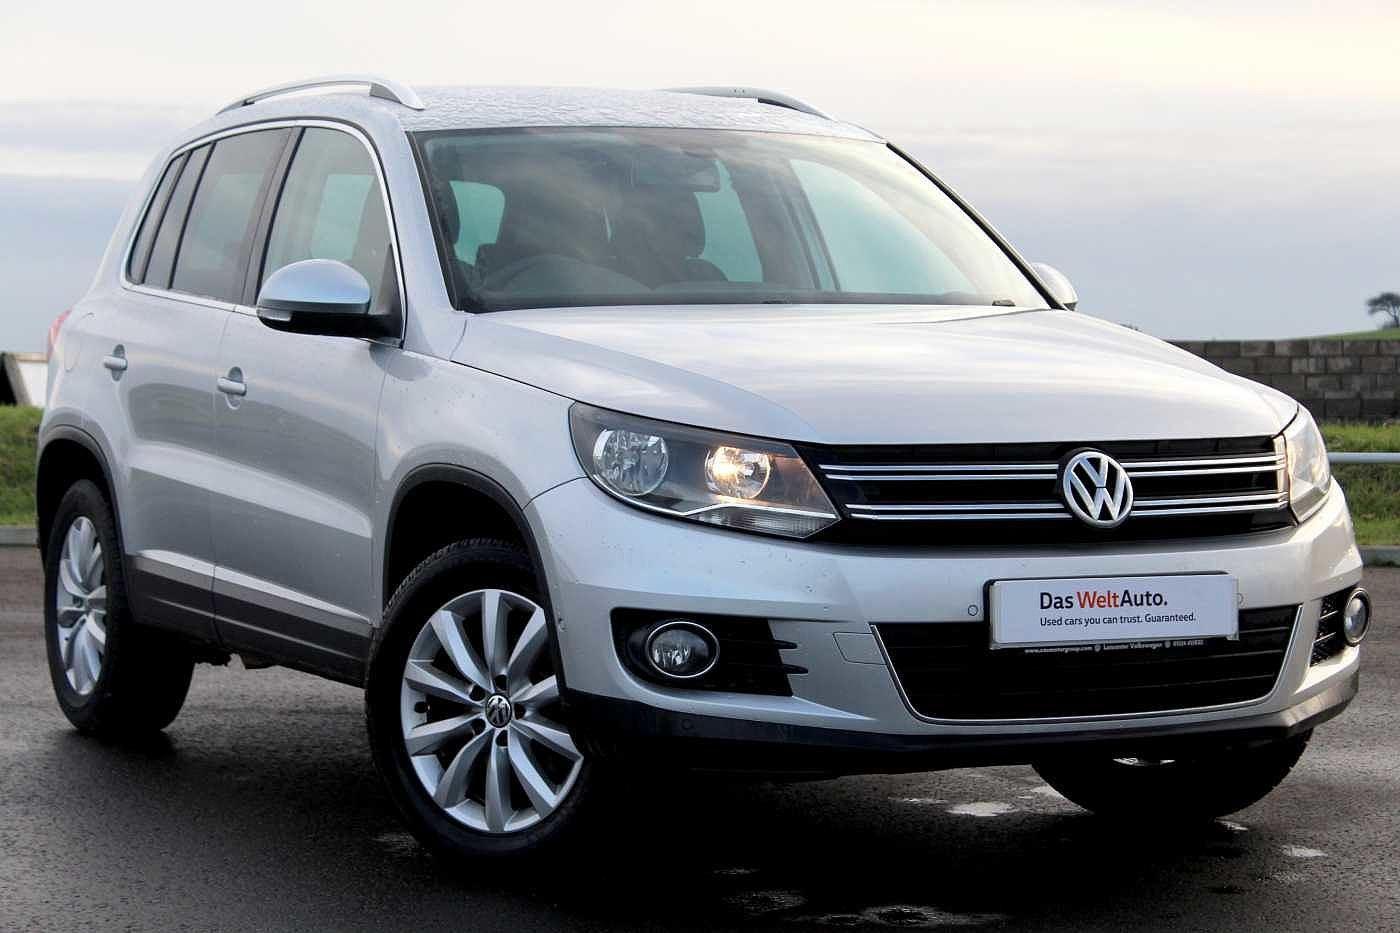 Volkswagen Tiguan 2.0TDI (140PS) 4WD Match BlueMotion 5-Dr